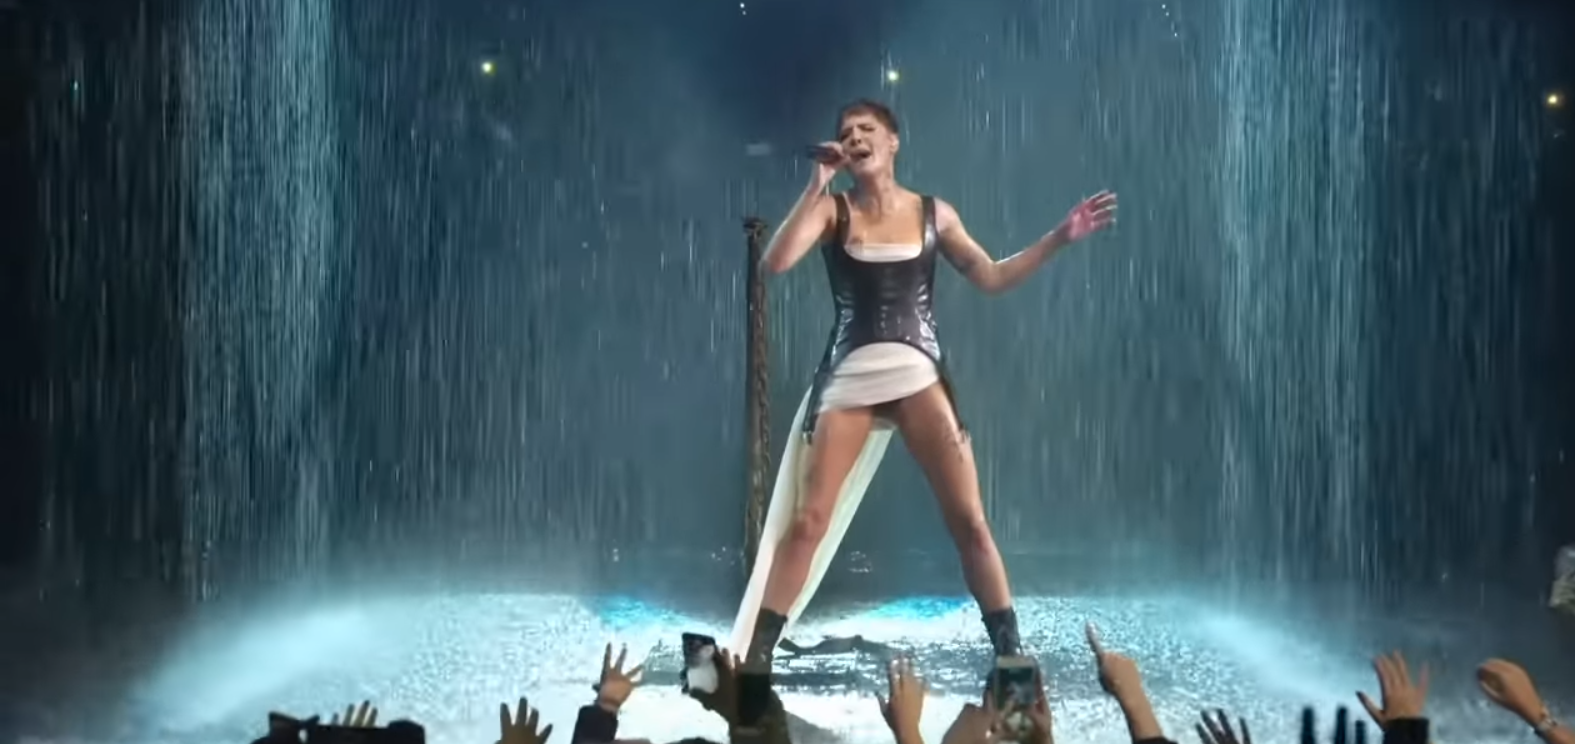 File:Halsey - Without Me Live MTV EMAs 2018 7 png